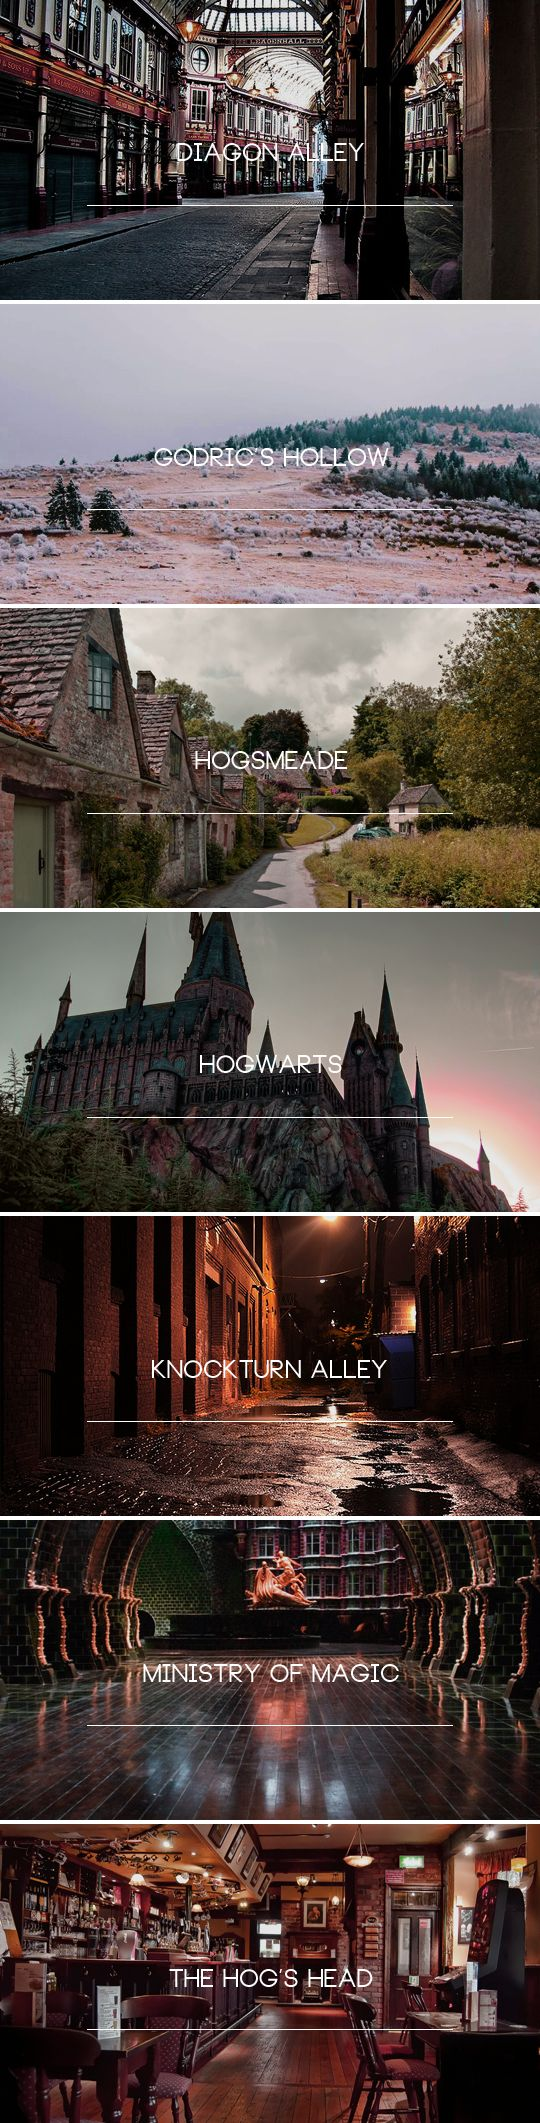 Harry Potter: Assorted Places in the Harry Potter World | #HarryPotter